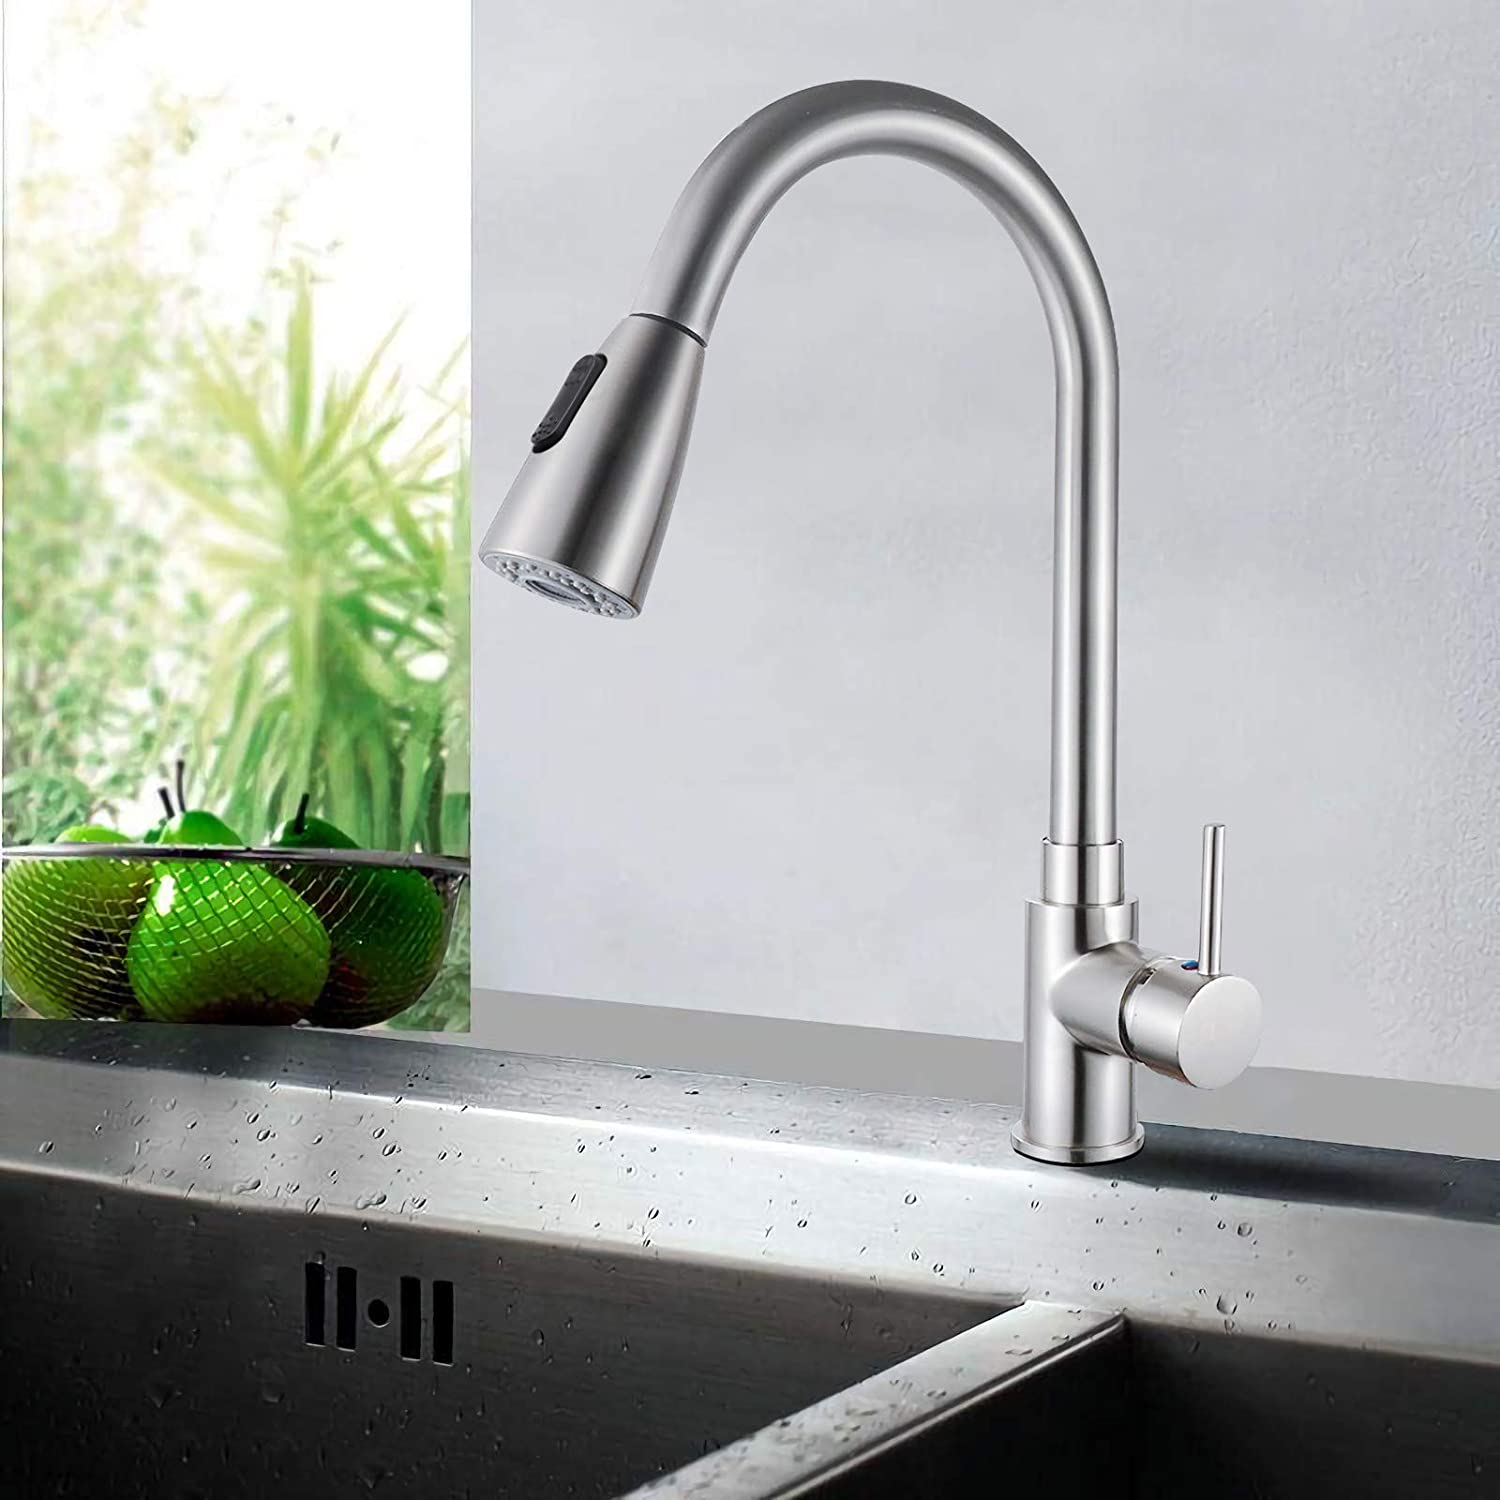 sncfoo Single Handle High Arc Pull out Kitchen Faucet Brushed Nickel,Single Level Stainless Steel Kitchen Sink Faucets 360 Swivel With Pull Down Sprayer 41x26x17.5cm